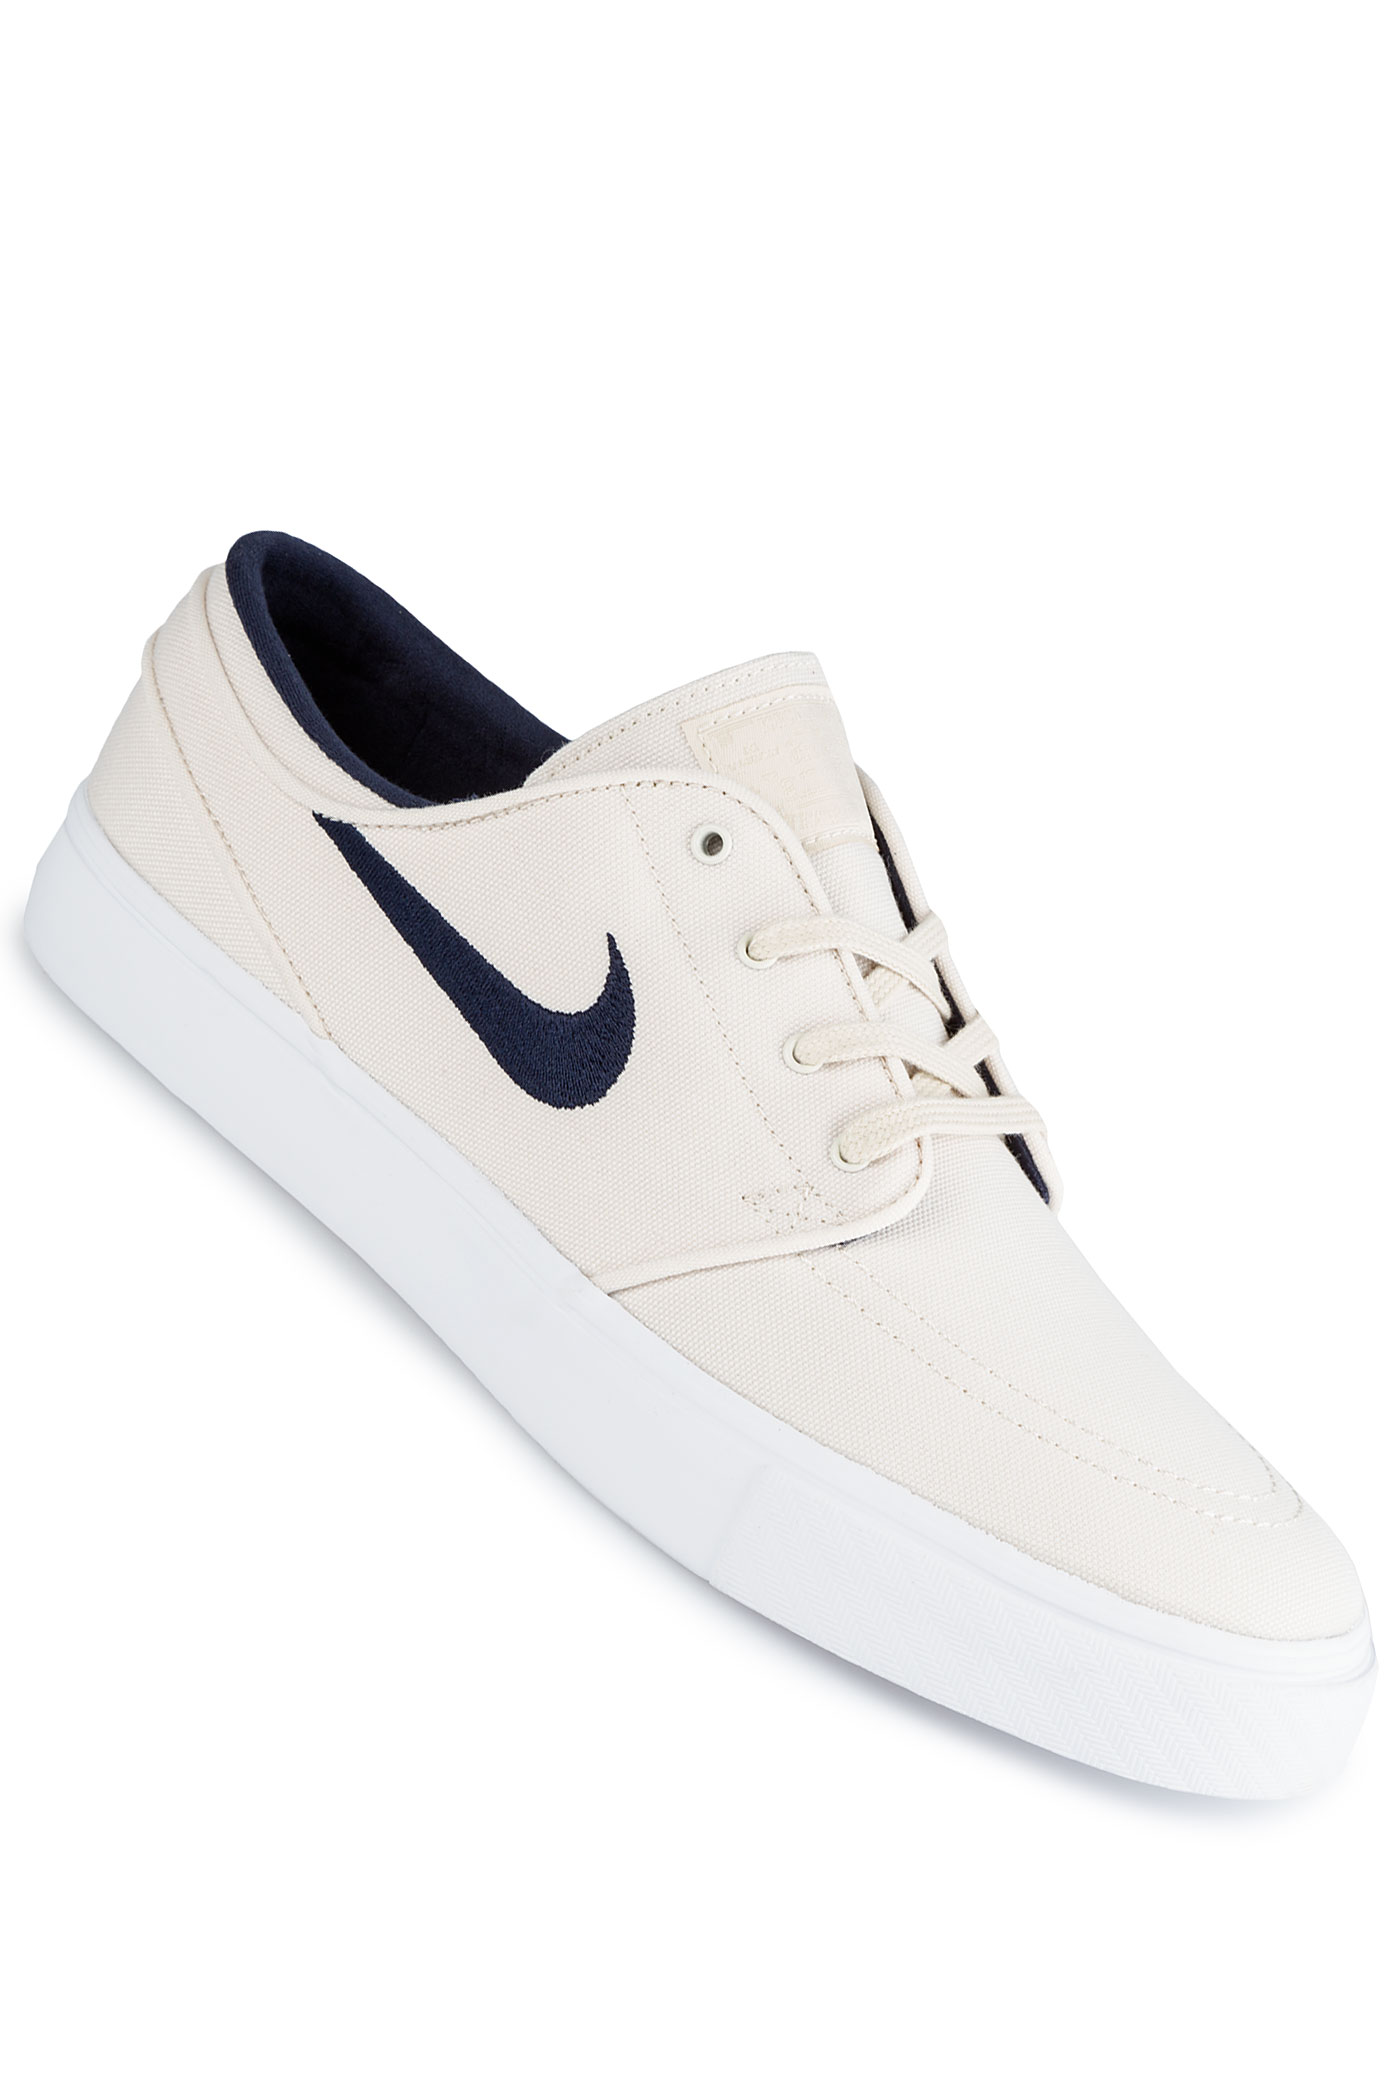 Zoom Chaussurelight Cream Stefan Nike Janoski Canvas Obsidian Sb VqMLSUzpG